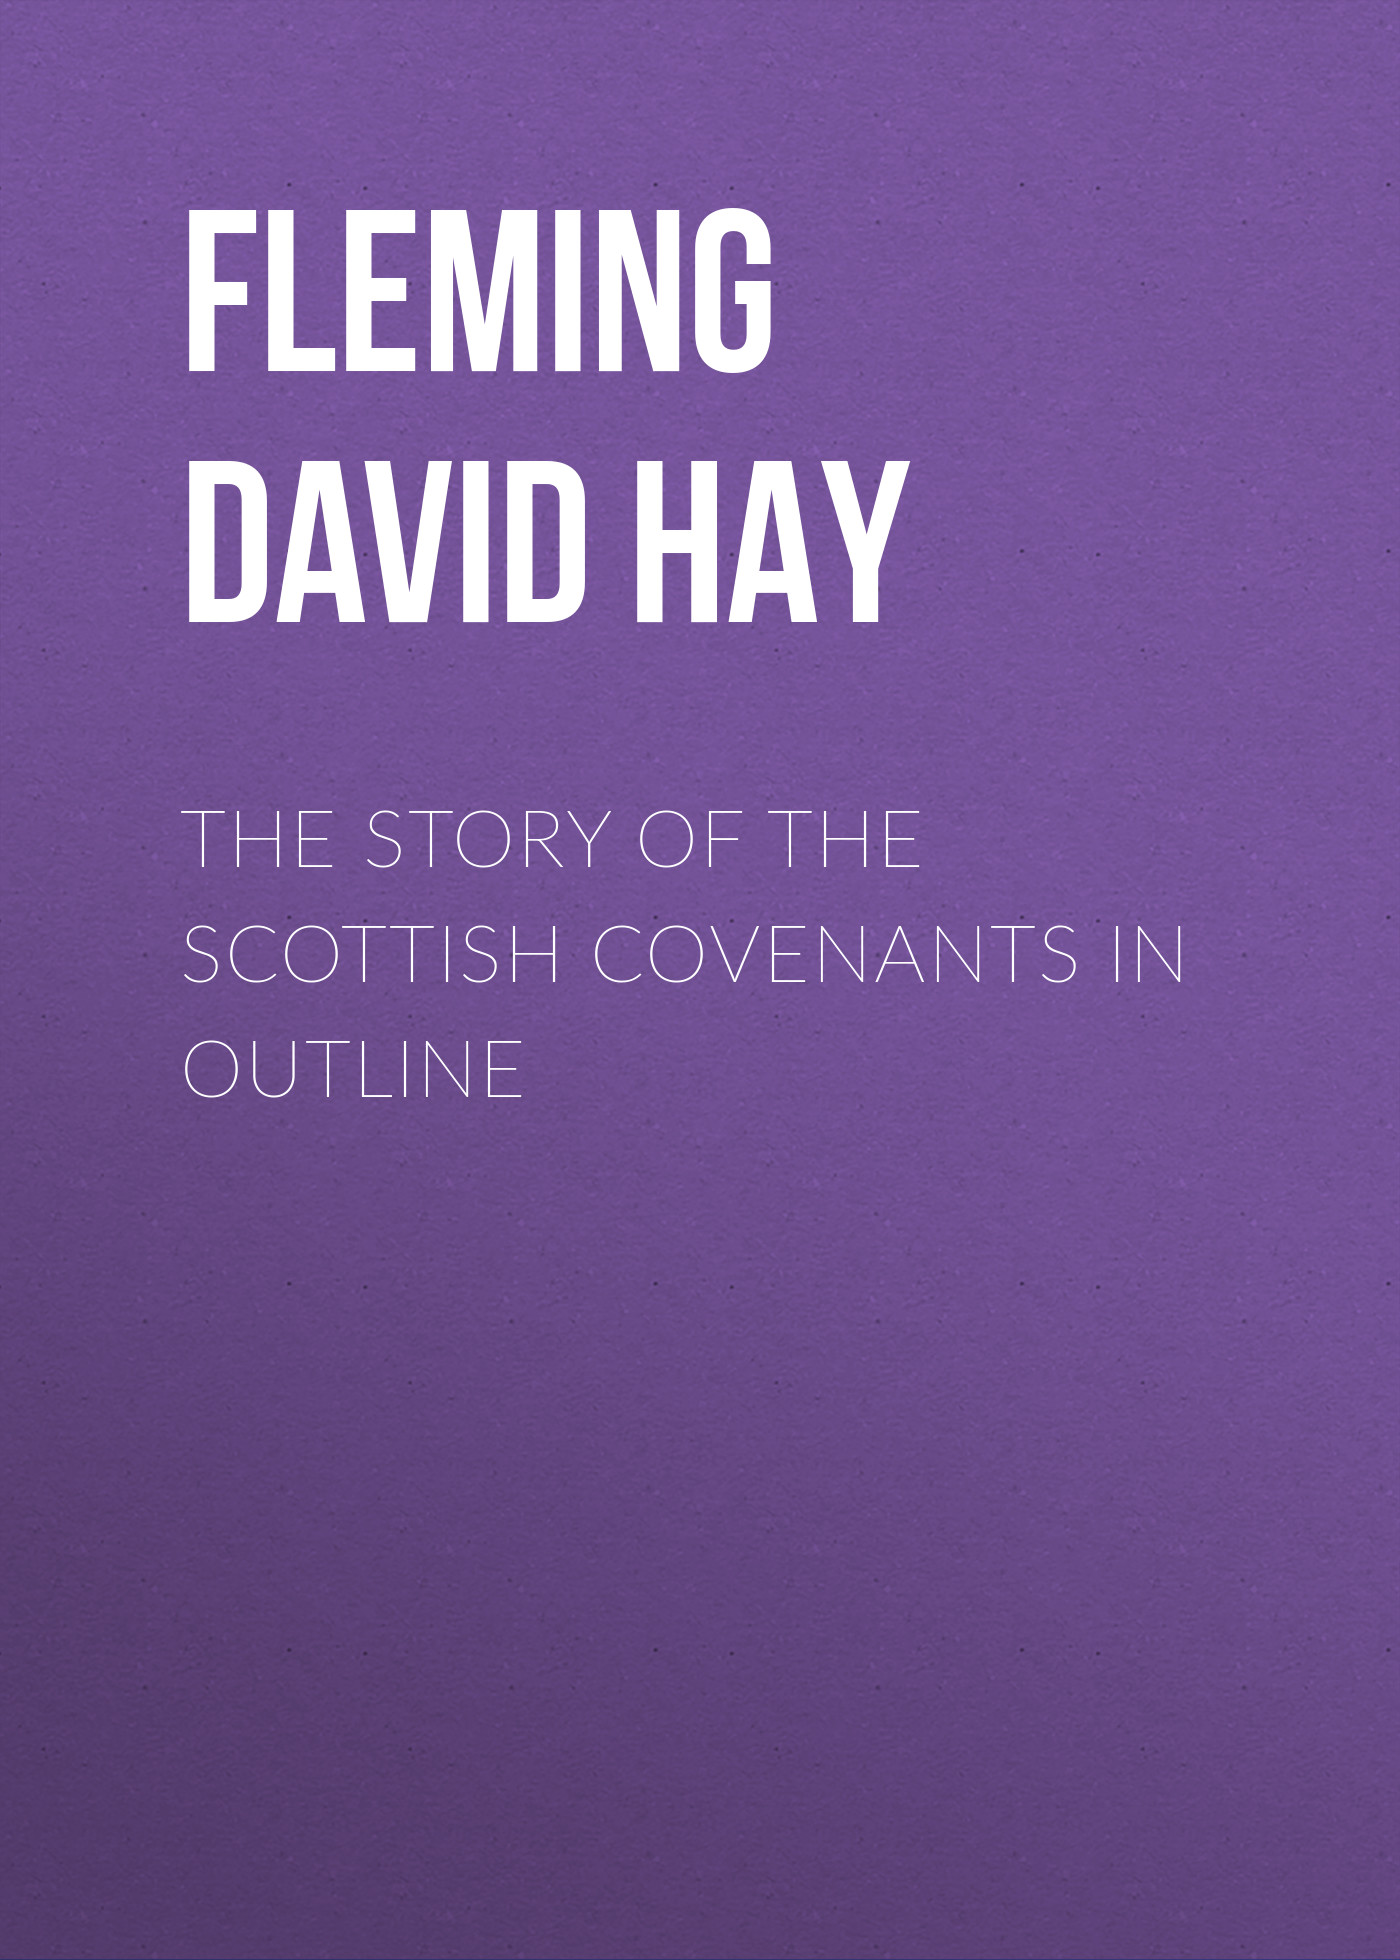 Fleming David Hay The Story of the Scottish Covenants in Outline